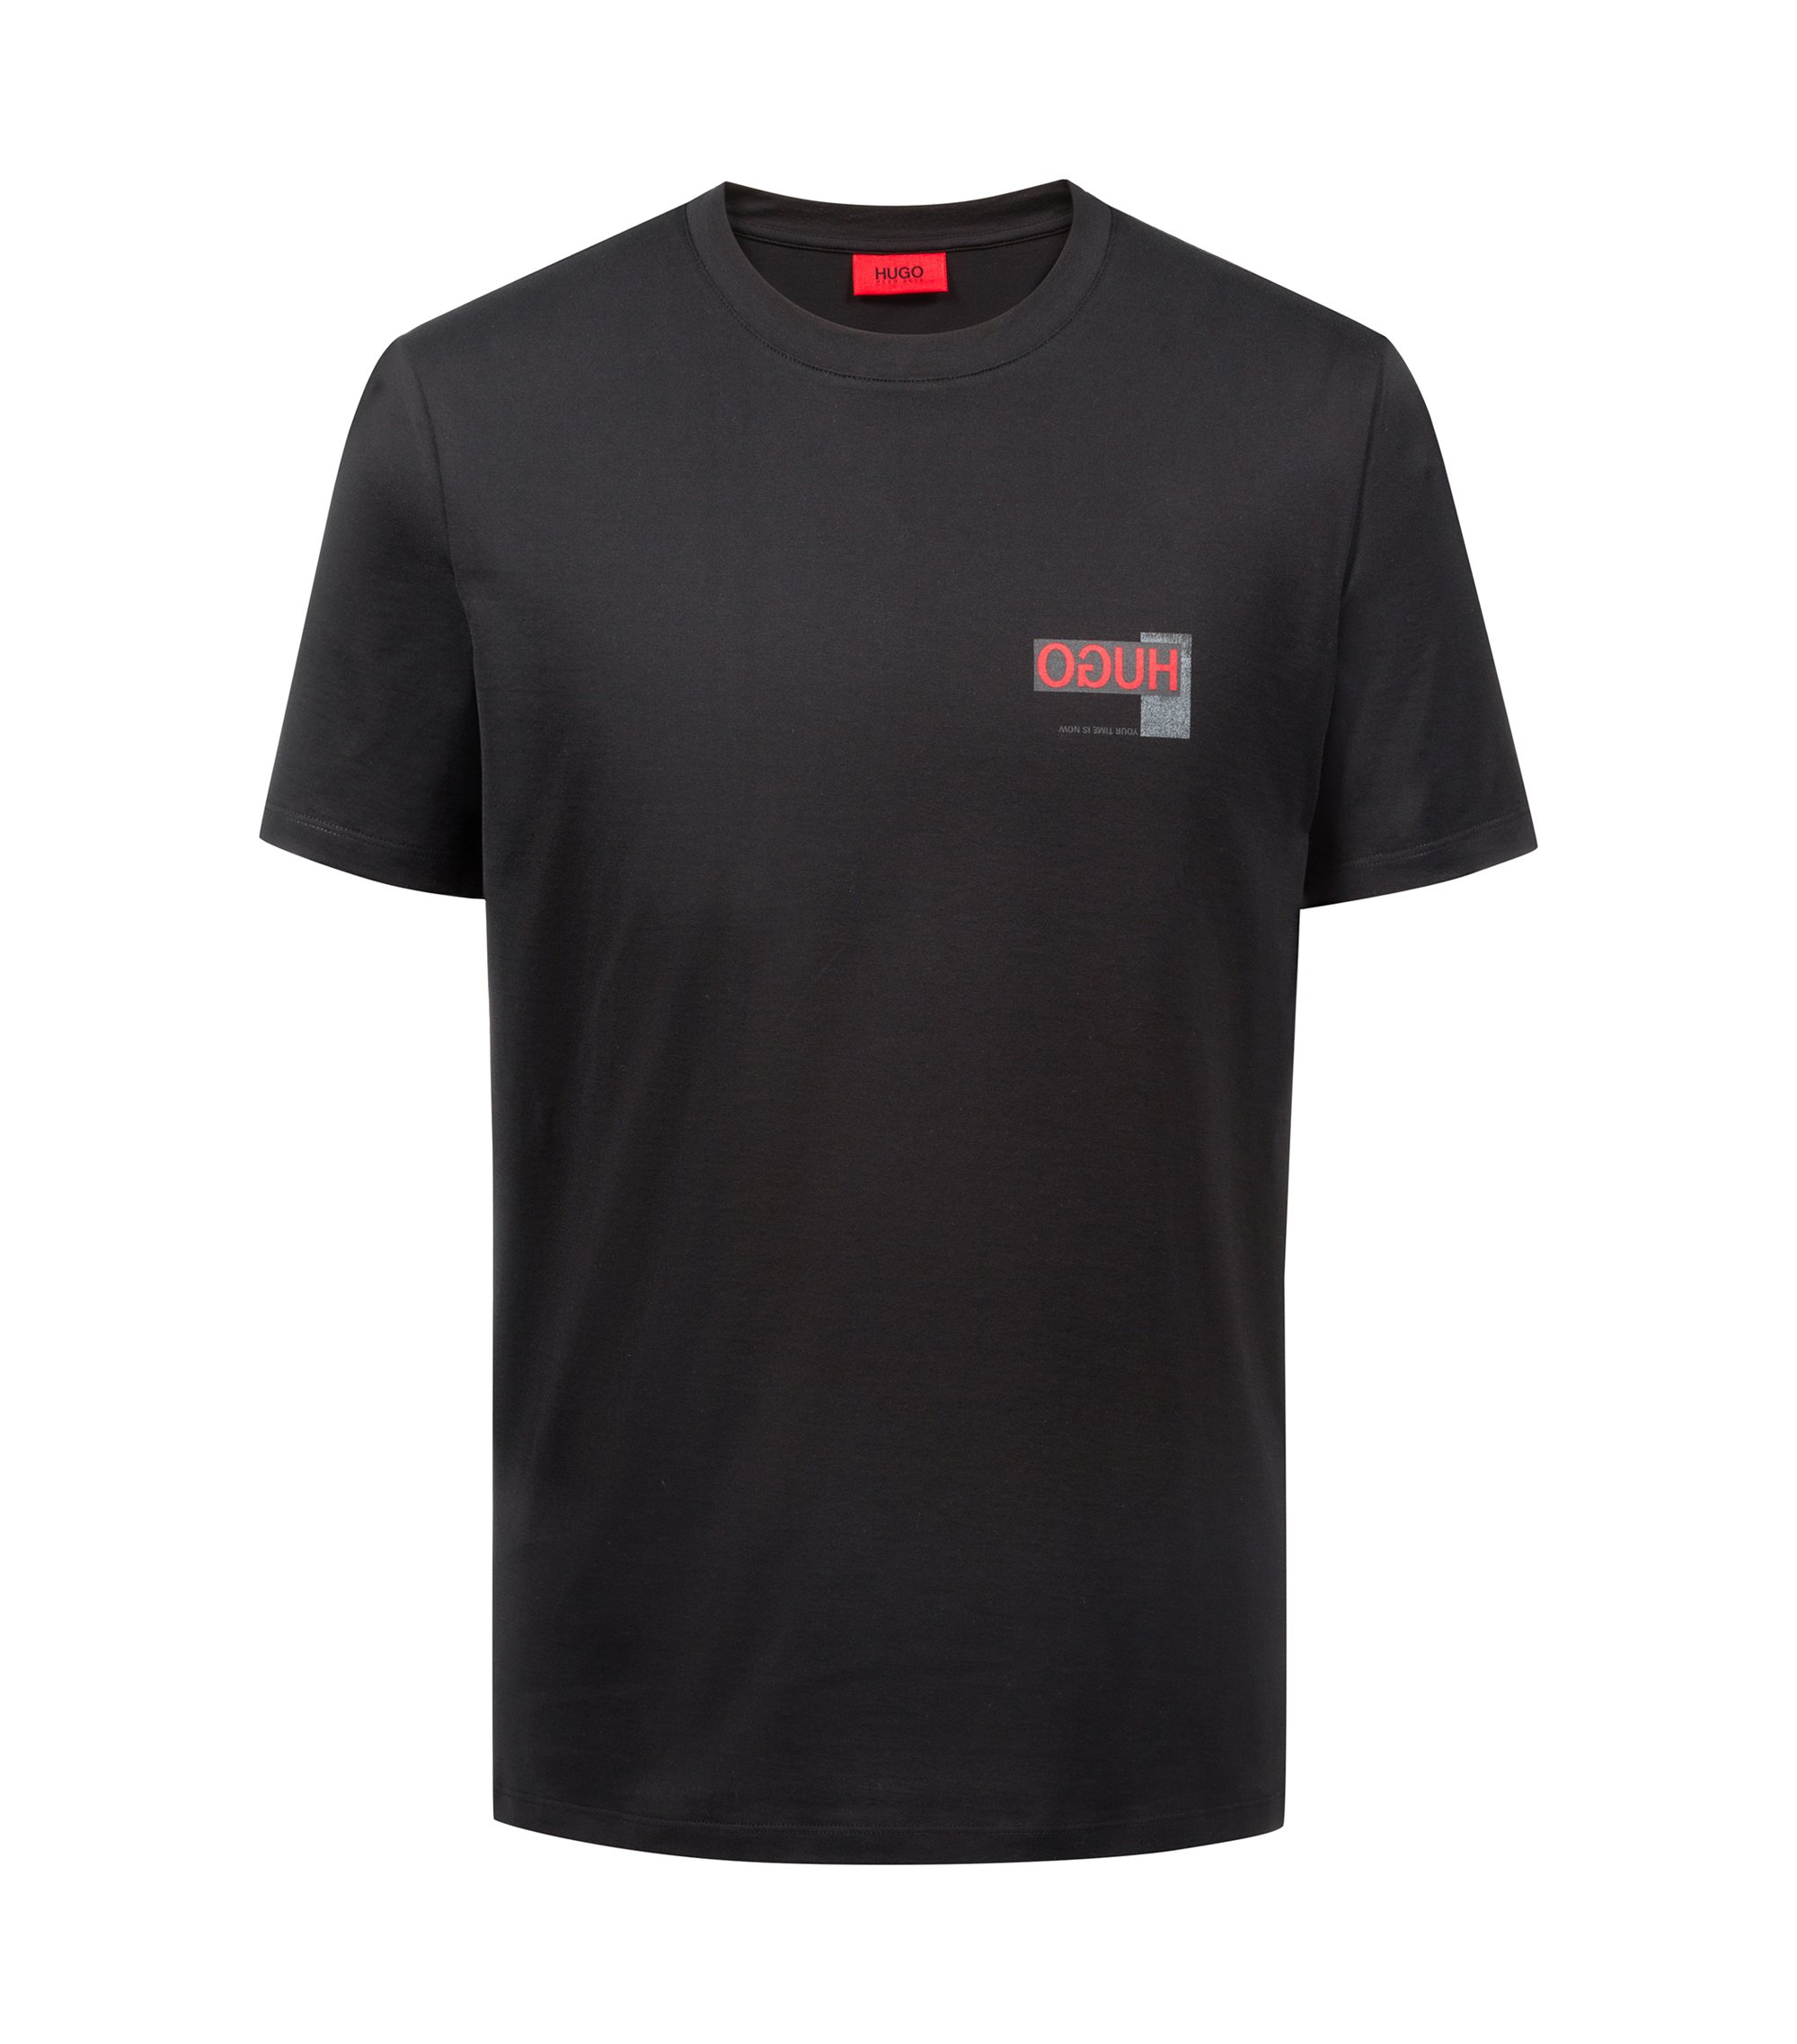 Oversized-fit T-shirt with reverse logo print, Black